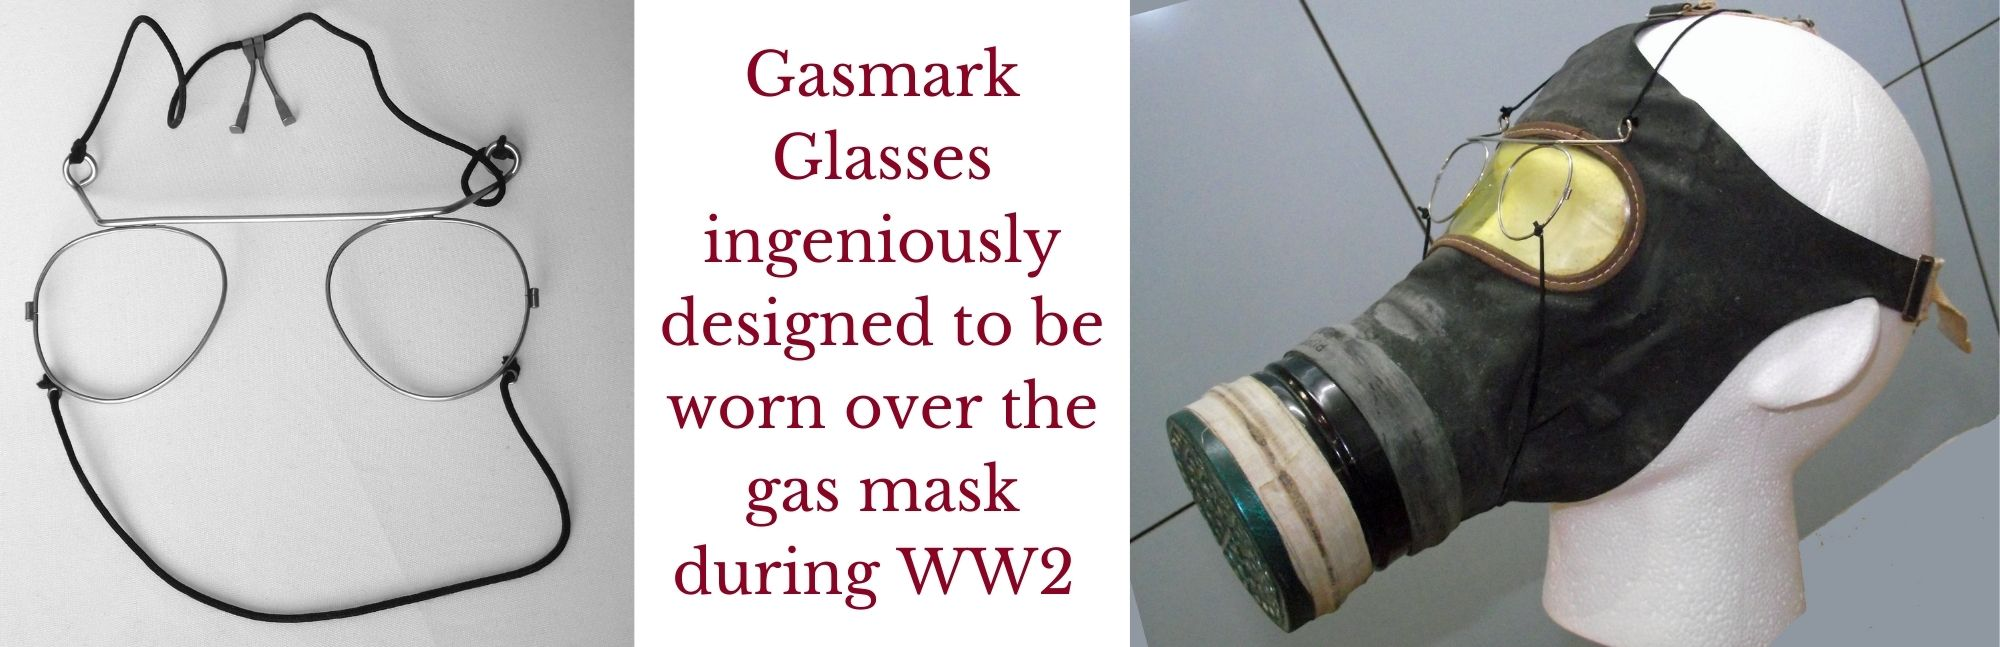 gas mask glasses worn over mask